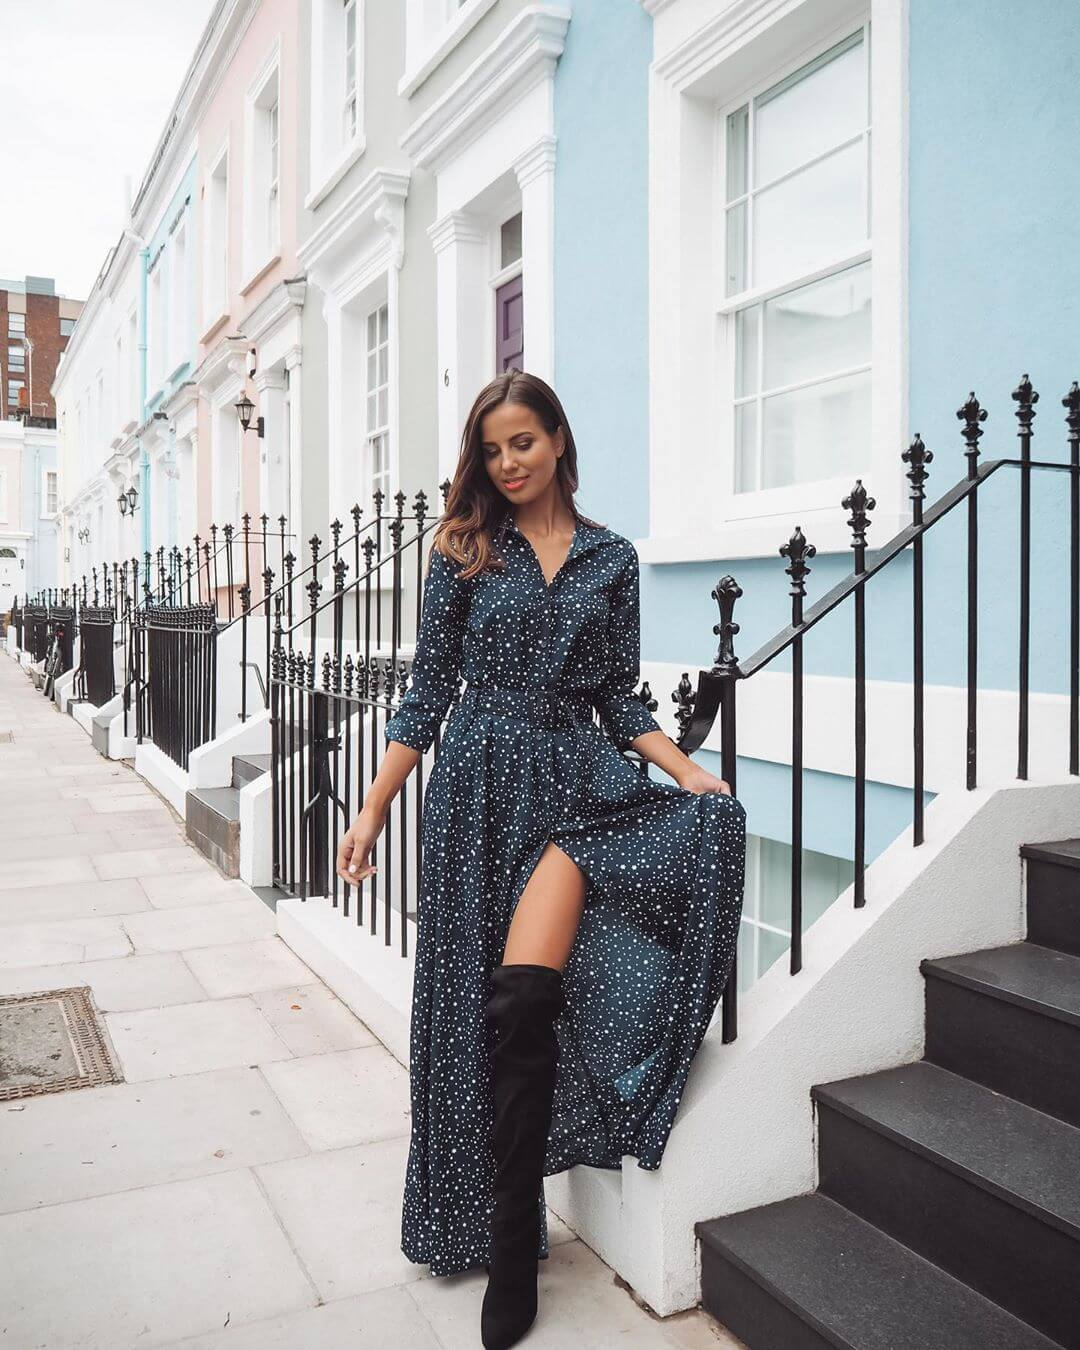 London influencer wears dove maxi dress in front of a row of colourful houses